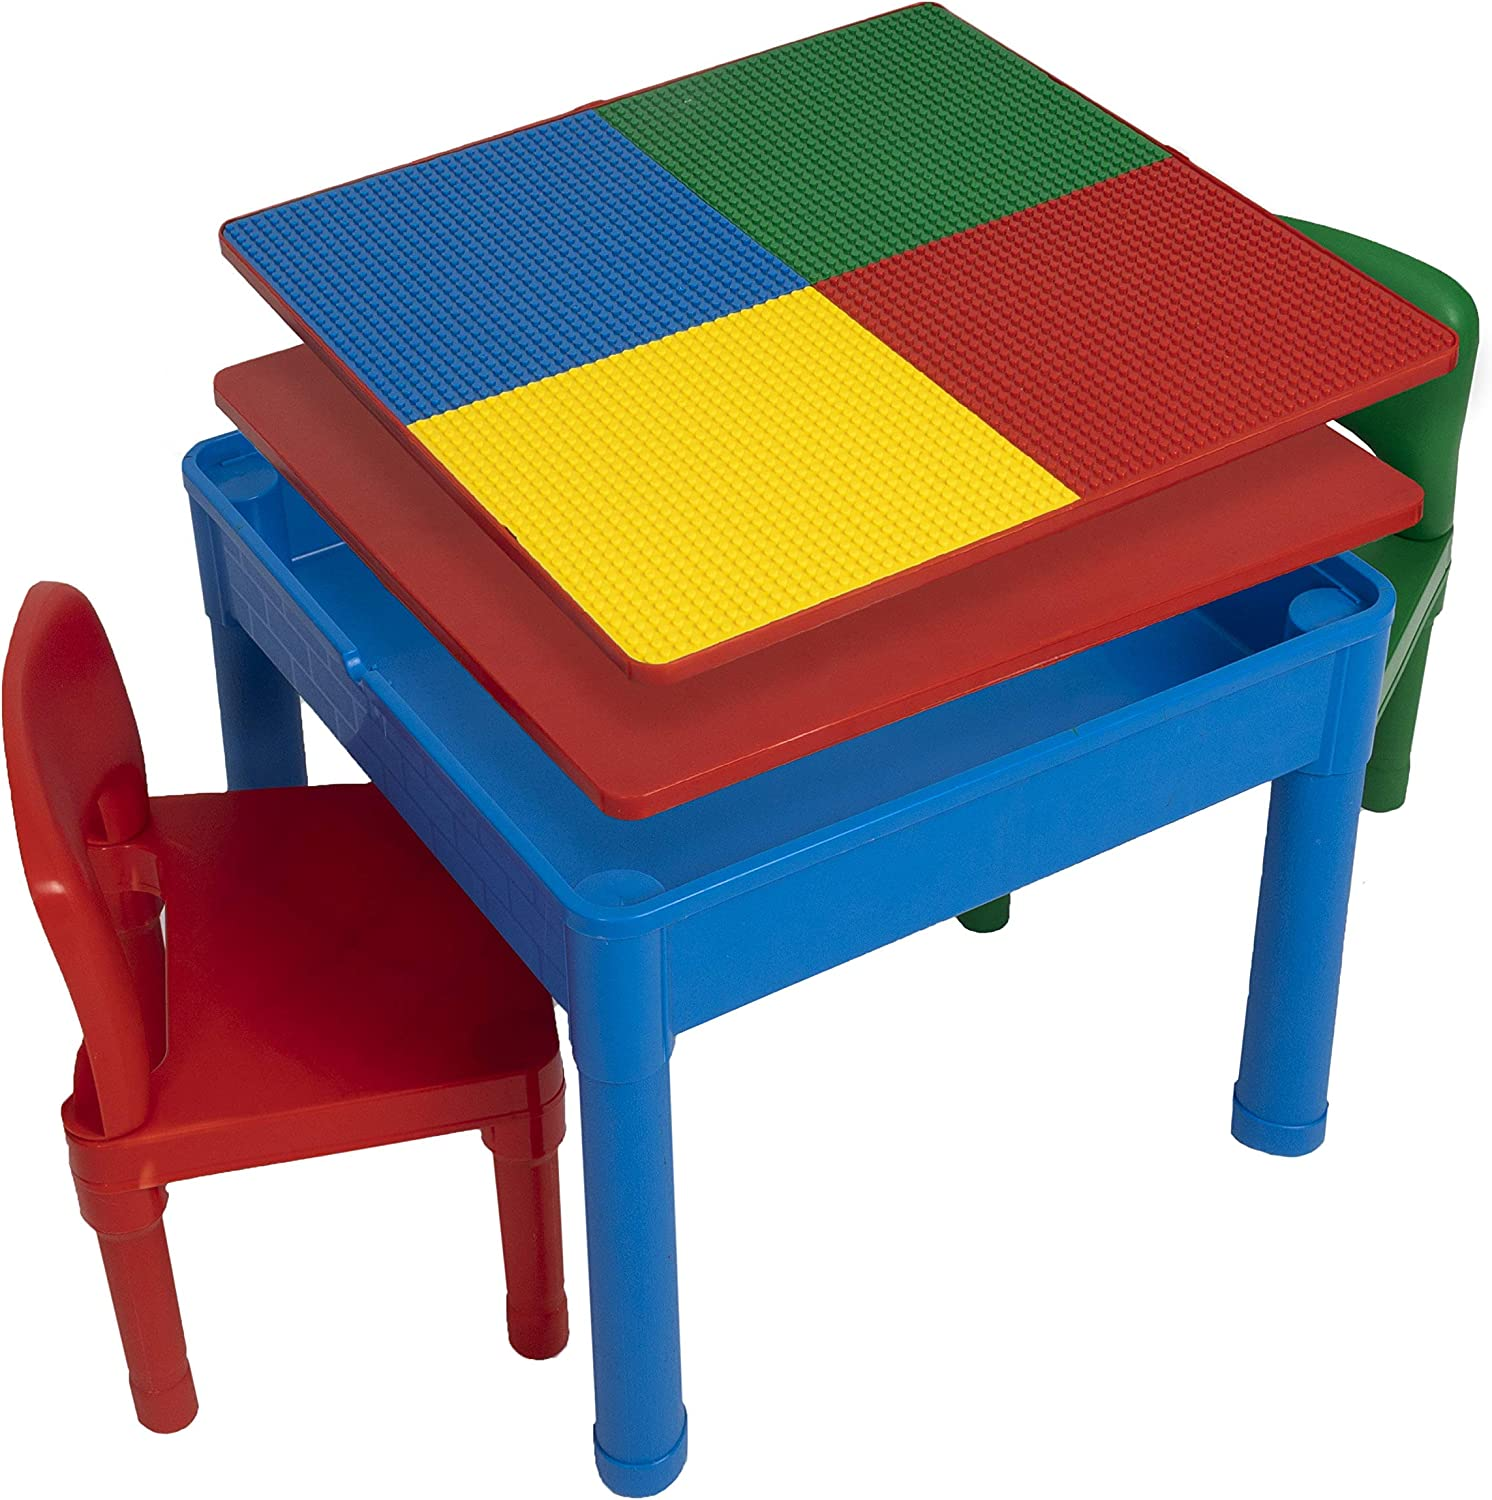 Greensen 2 in 1 Kids Activity Table Detachable Building Block Table Children Wood Play Table Desk Arts Crafts Table for Boys Girls Learn Desk 32.7x17.4x19.7in